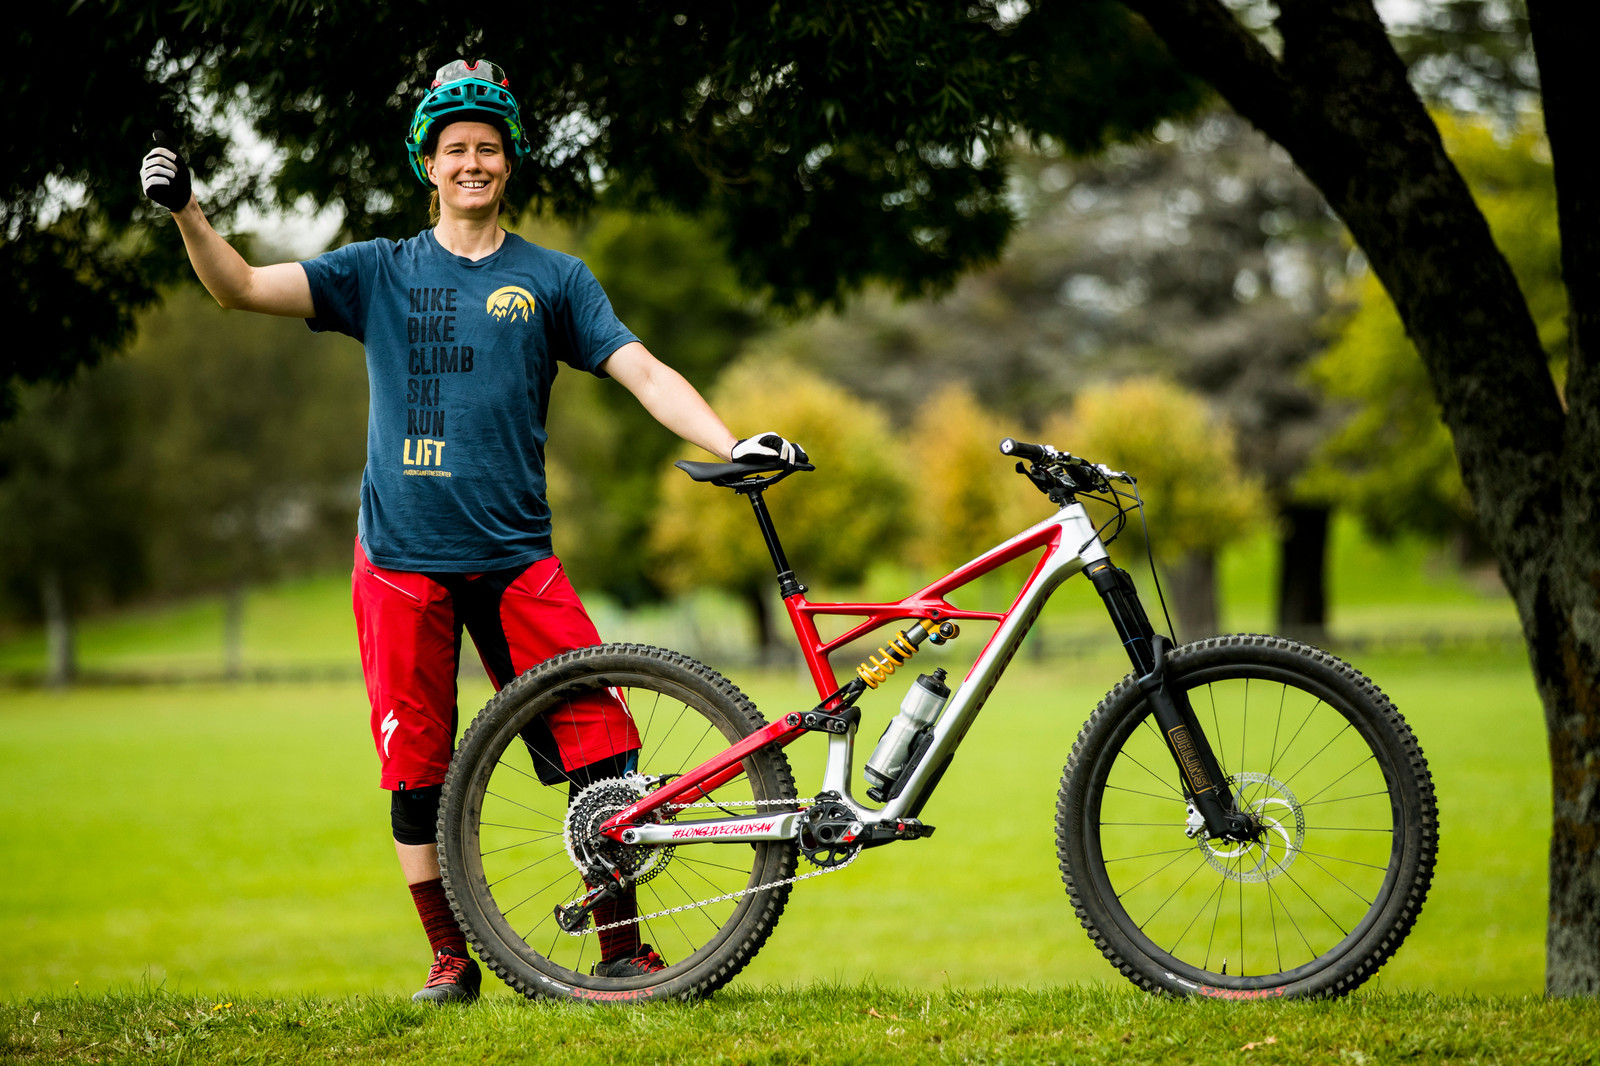 Miranda Miller with her Specialized Enduro - PIT BITS - Enduro World Series, Rotorua, New Zealand - Mountain Biking Pictures - Vital MTB